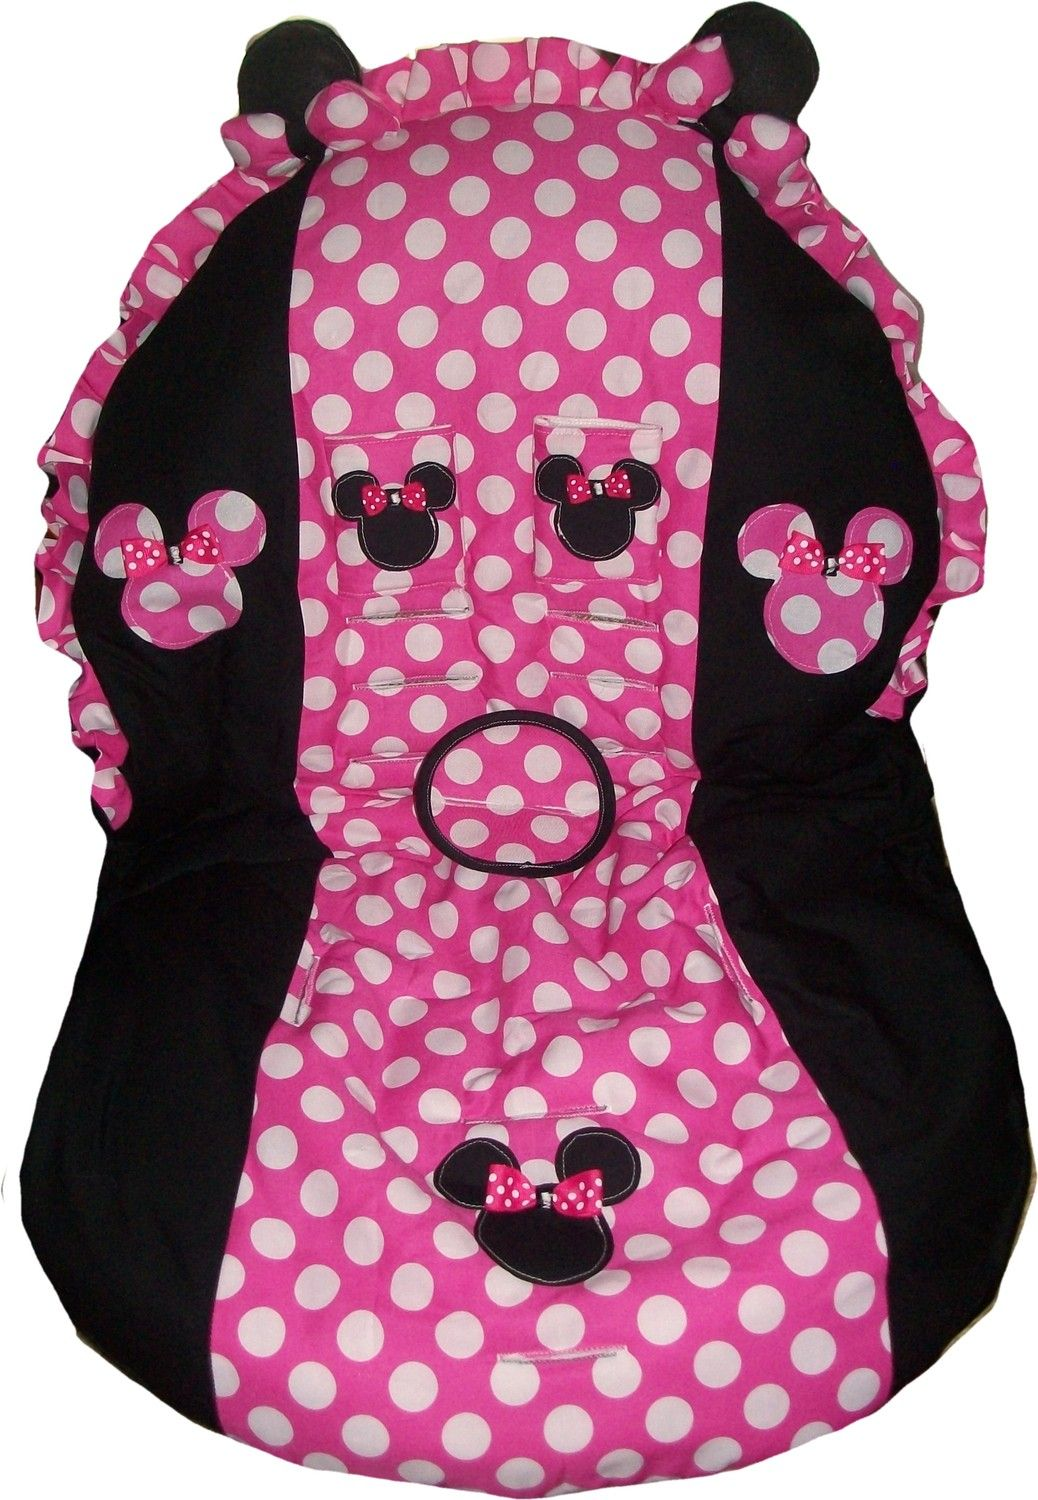 Minnie Mouse Toddler Cover Britax Graco Cosco And More 8500 Via Etsy